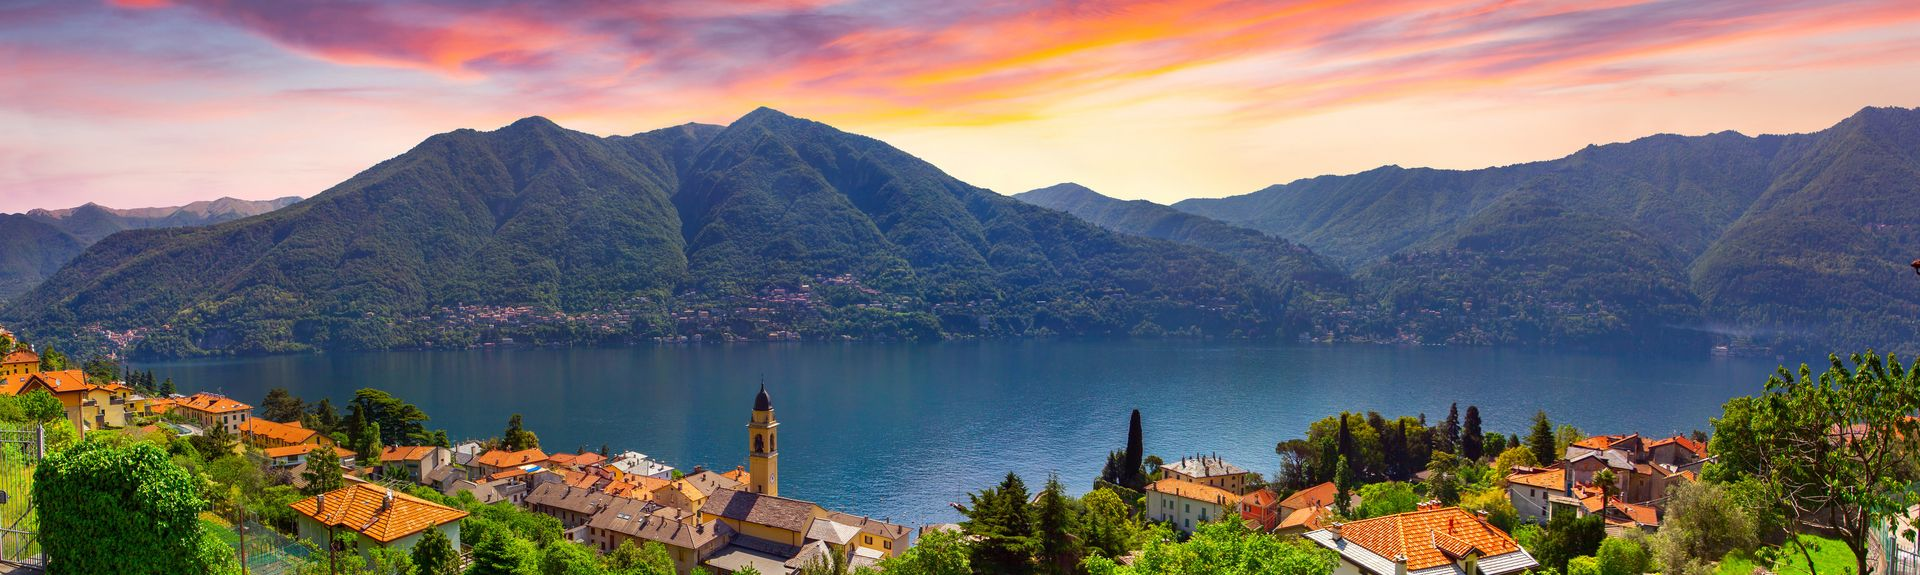 Lake Como, IT holiday lettings: Houses & more | HomeAway